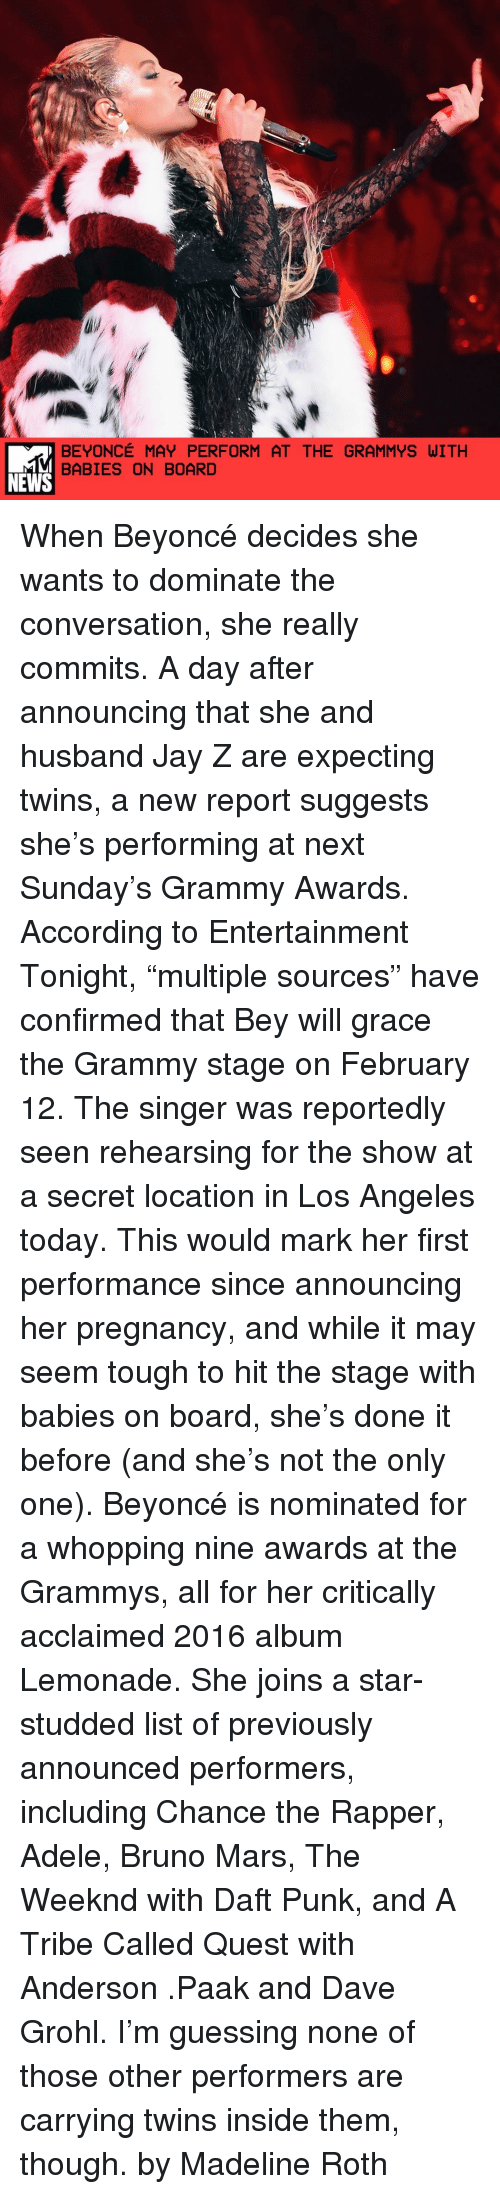 "nominal: BEYONCE MAY PERFORM AT THE GRAMMYS WITH  BABIES ON BOARD  NEWS When Beyoncé decides she wants to dominate the conversation, she really commits. A day after announcing that she and husband Jay Z are expecting twins, a new report suggests she's performing at next Sunday's Grammy Awards. According to Entertainment Tonight, ""multiple sources"" have confirmed that Bey will grace the Grammy stage on February 12. The singer was reportedly seen rehearsing for the show at a secret location in Los Angeles today. This would mark her first performance since announcing her pregnancy, and while it may seem tough to hit the stage with babies on board, she's done it before (and she's not the only one). Beyoncé is nominated for a whopping nine awards at the Grammys, all for her critically acclaimed 2016 album Lemonade. She joins a star-studded list of previously announced performers, including Chance the Rapper, Adele, Bruno Mars, The Weeknd with Daft Punk, and A Tribe Called Quest with Anderson .Paak and Dave Grohl. I'm guessing none of those other performers are carrying twins inside them, though. by Madeline Roth"